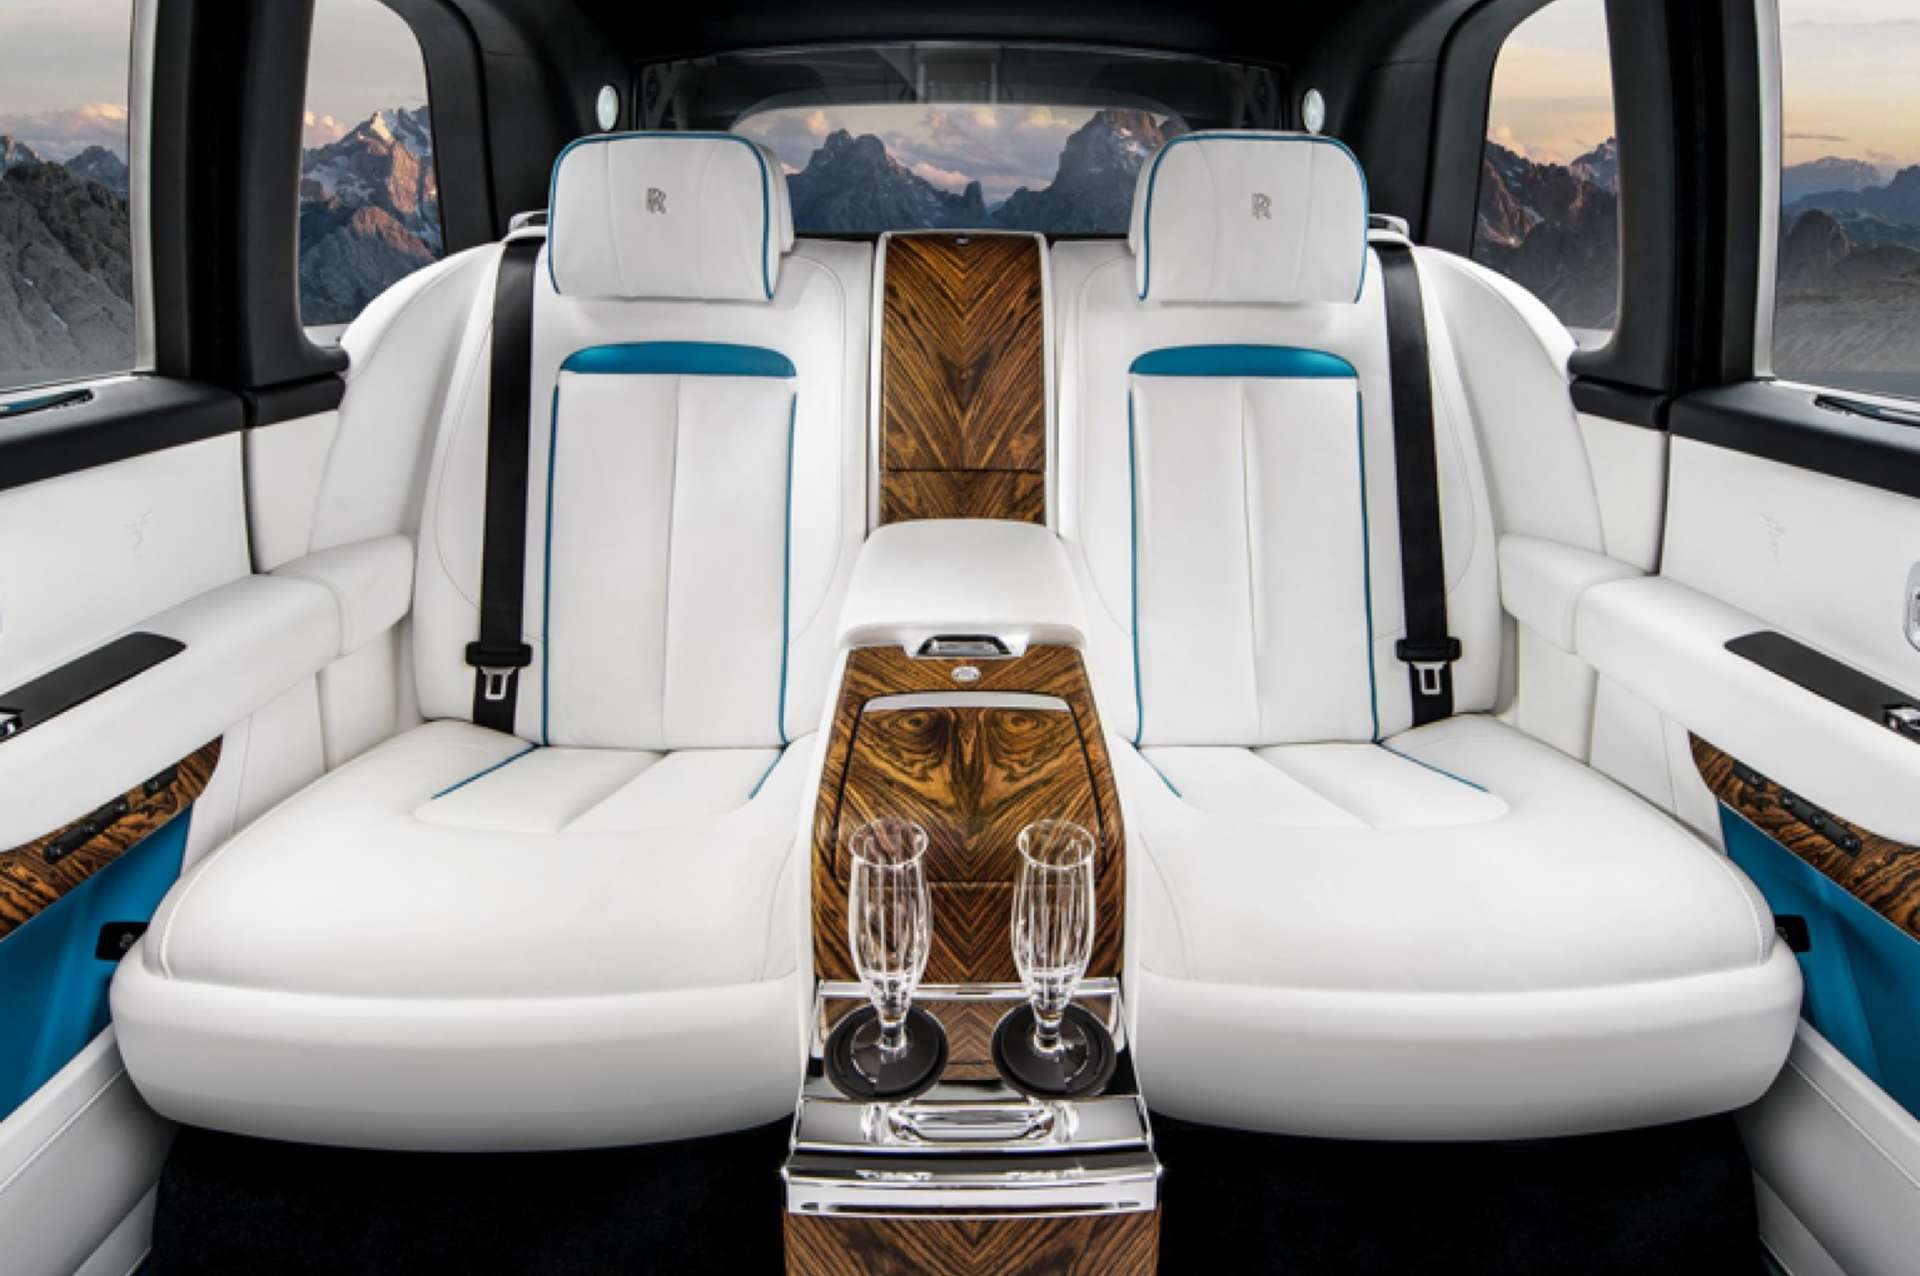 The interior of a Rolls-Royce Cullinan, featuring white leather seating